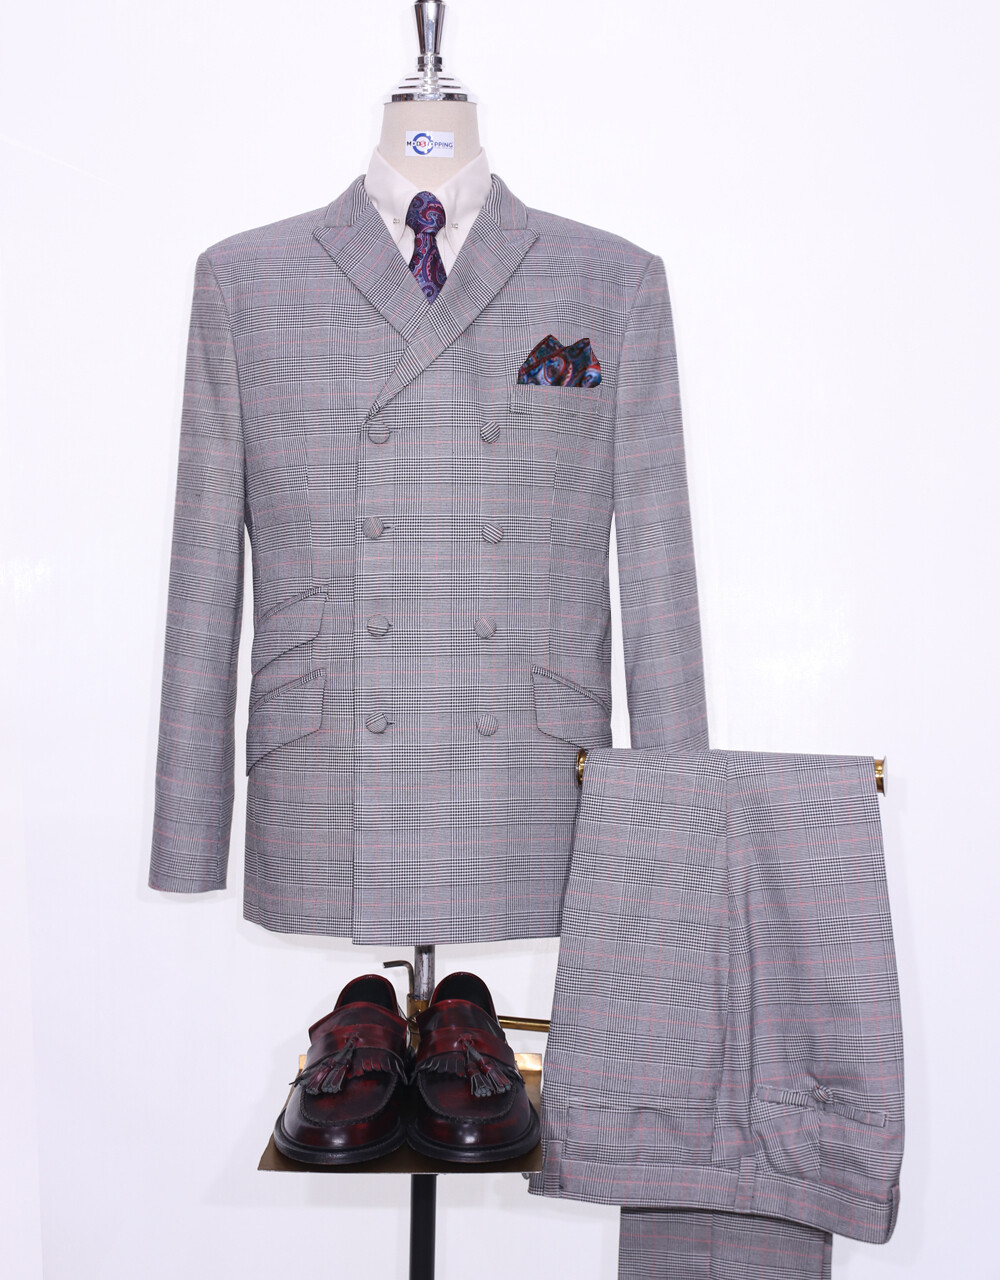 Double Breasted Suit  | Mod Style Light Grey Prince Of Wales Suit